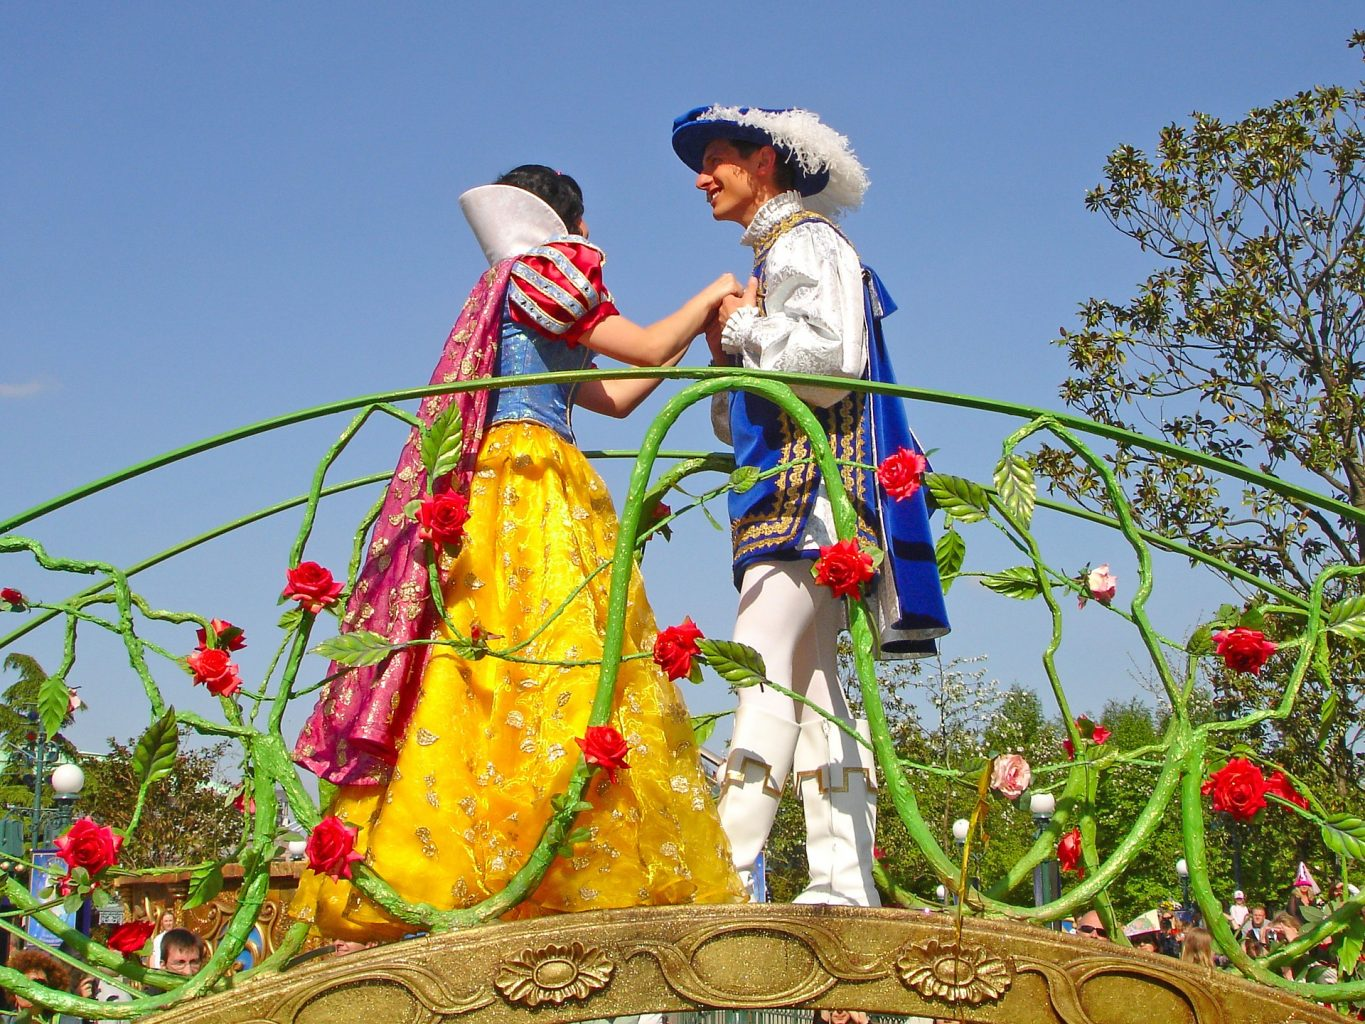 You can meet some of your favorite characters like Snow White and her prince at Disney!